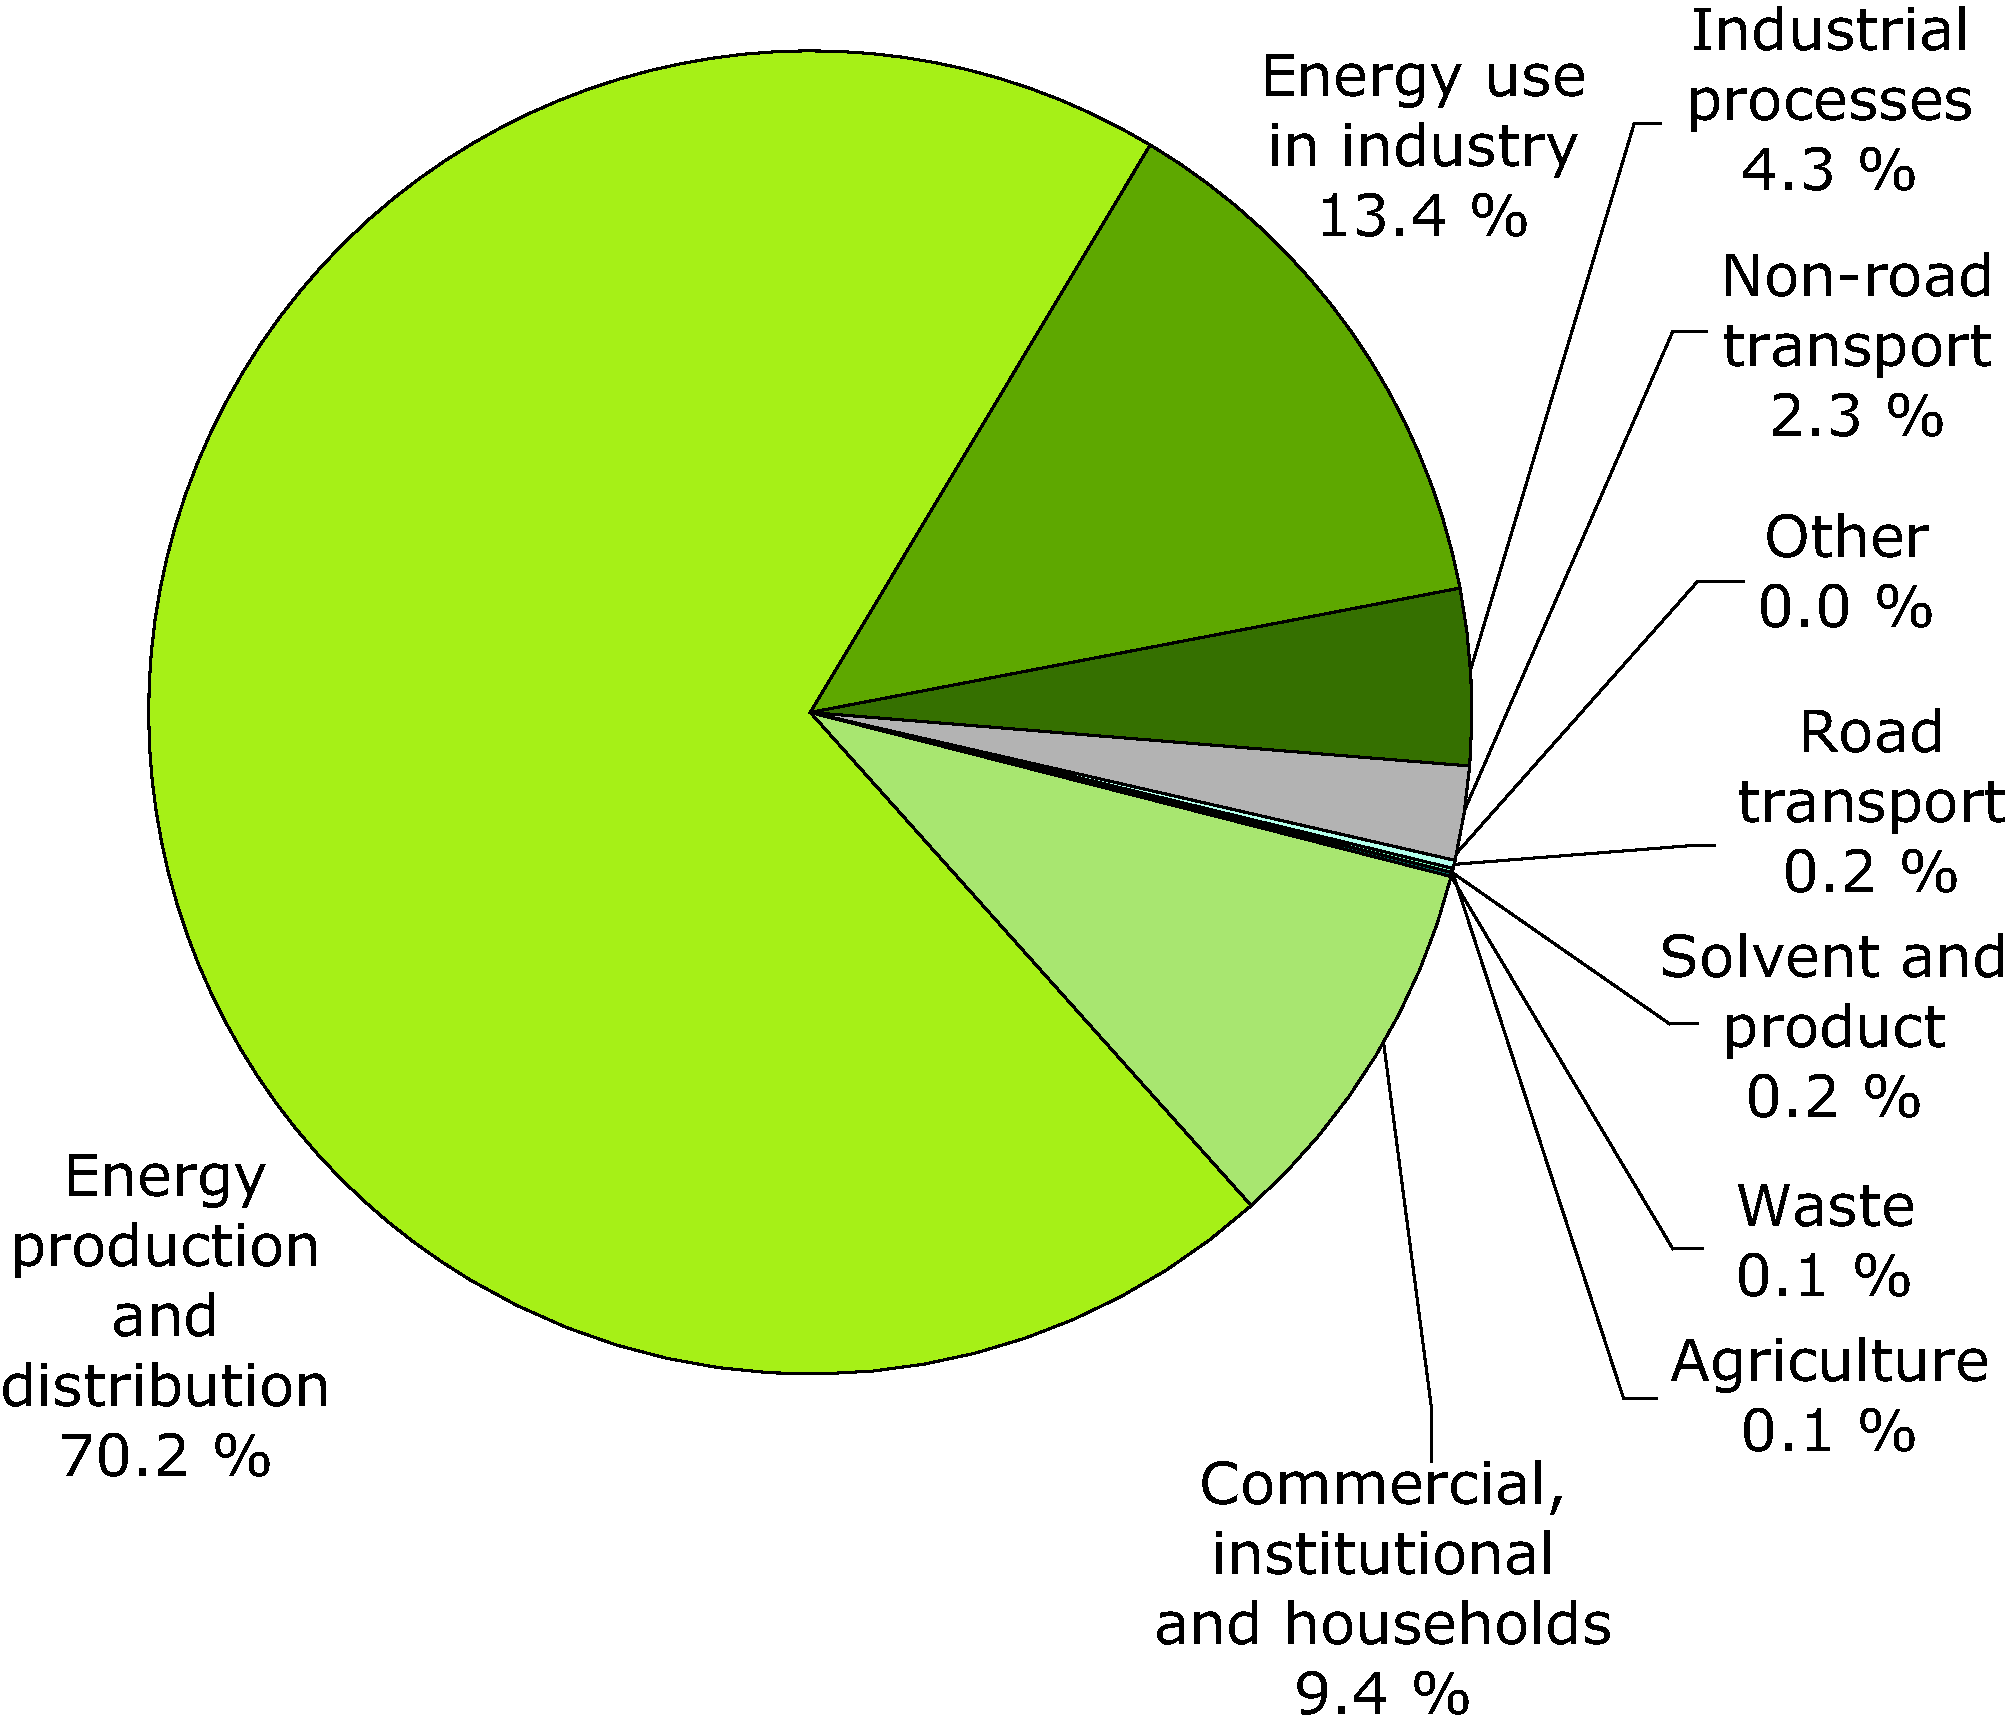 Sector share of sulphur oxides emissions - 2009 (EEA member countries)